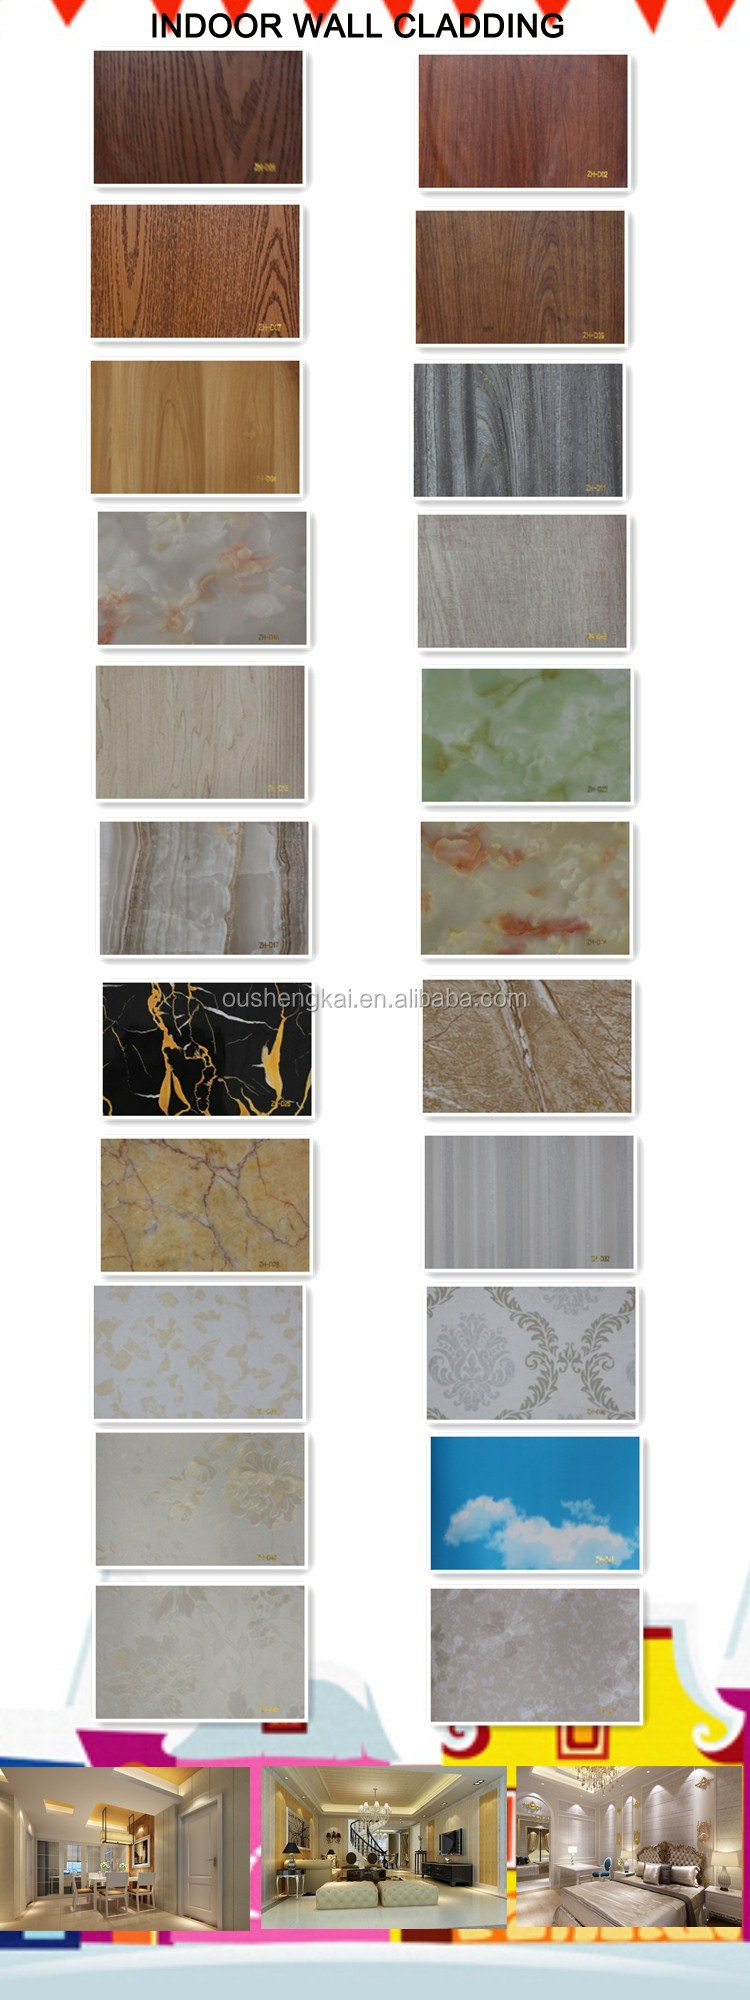 Wall decorative panel indoor wpc waterproof durable wall cladding